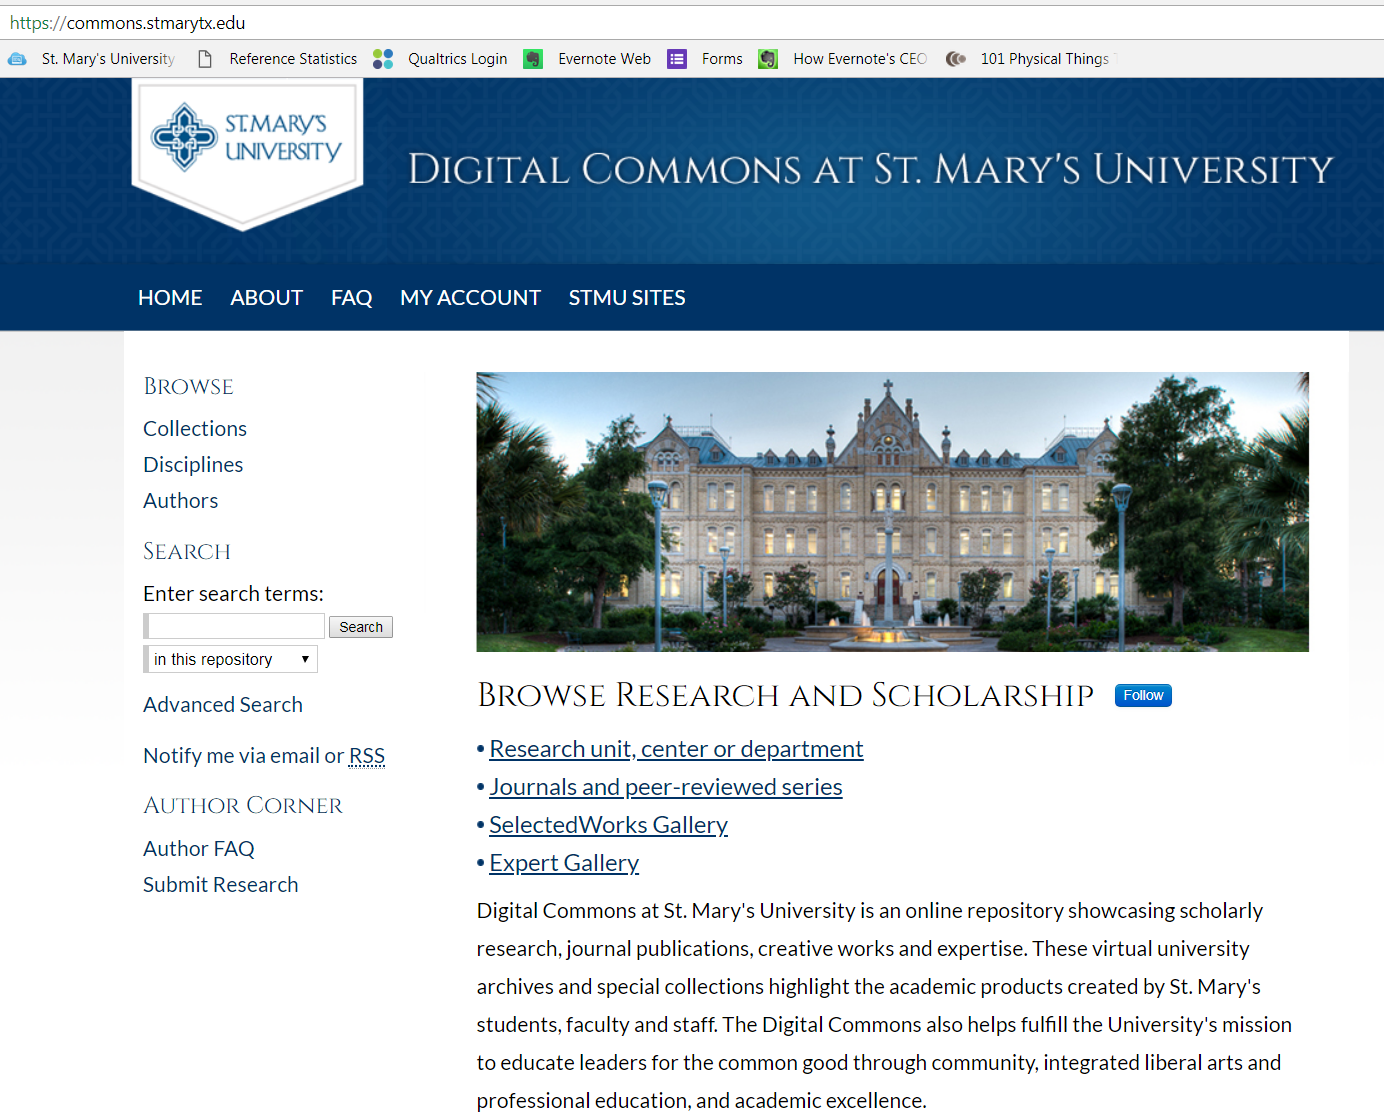 Digital Commons at St. Mary's University home page